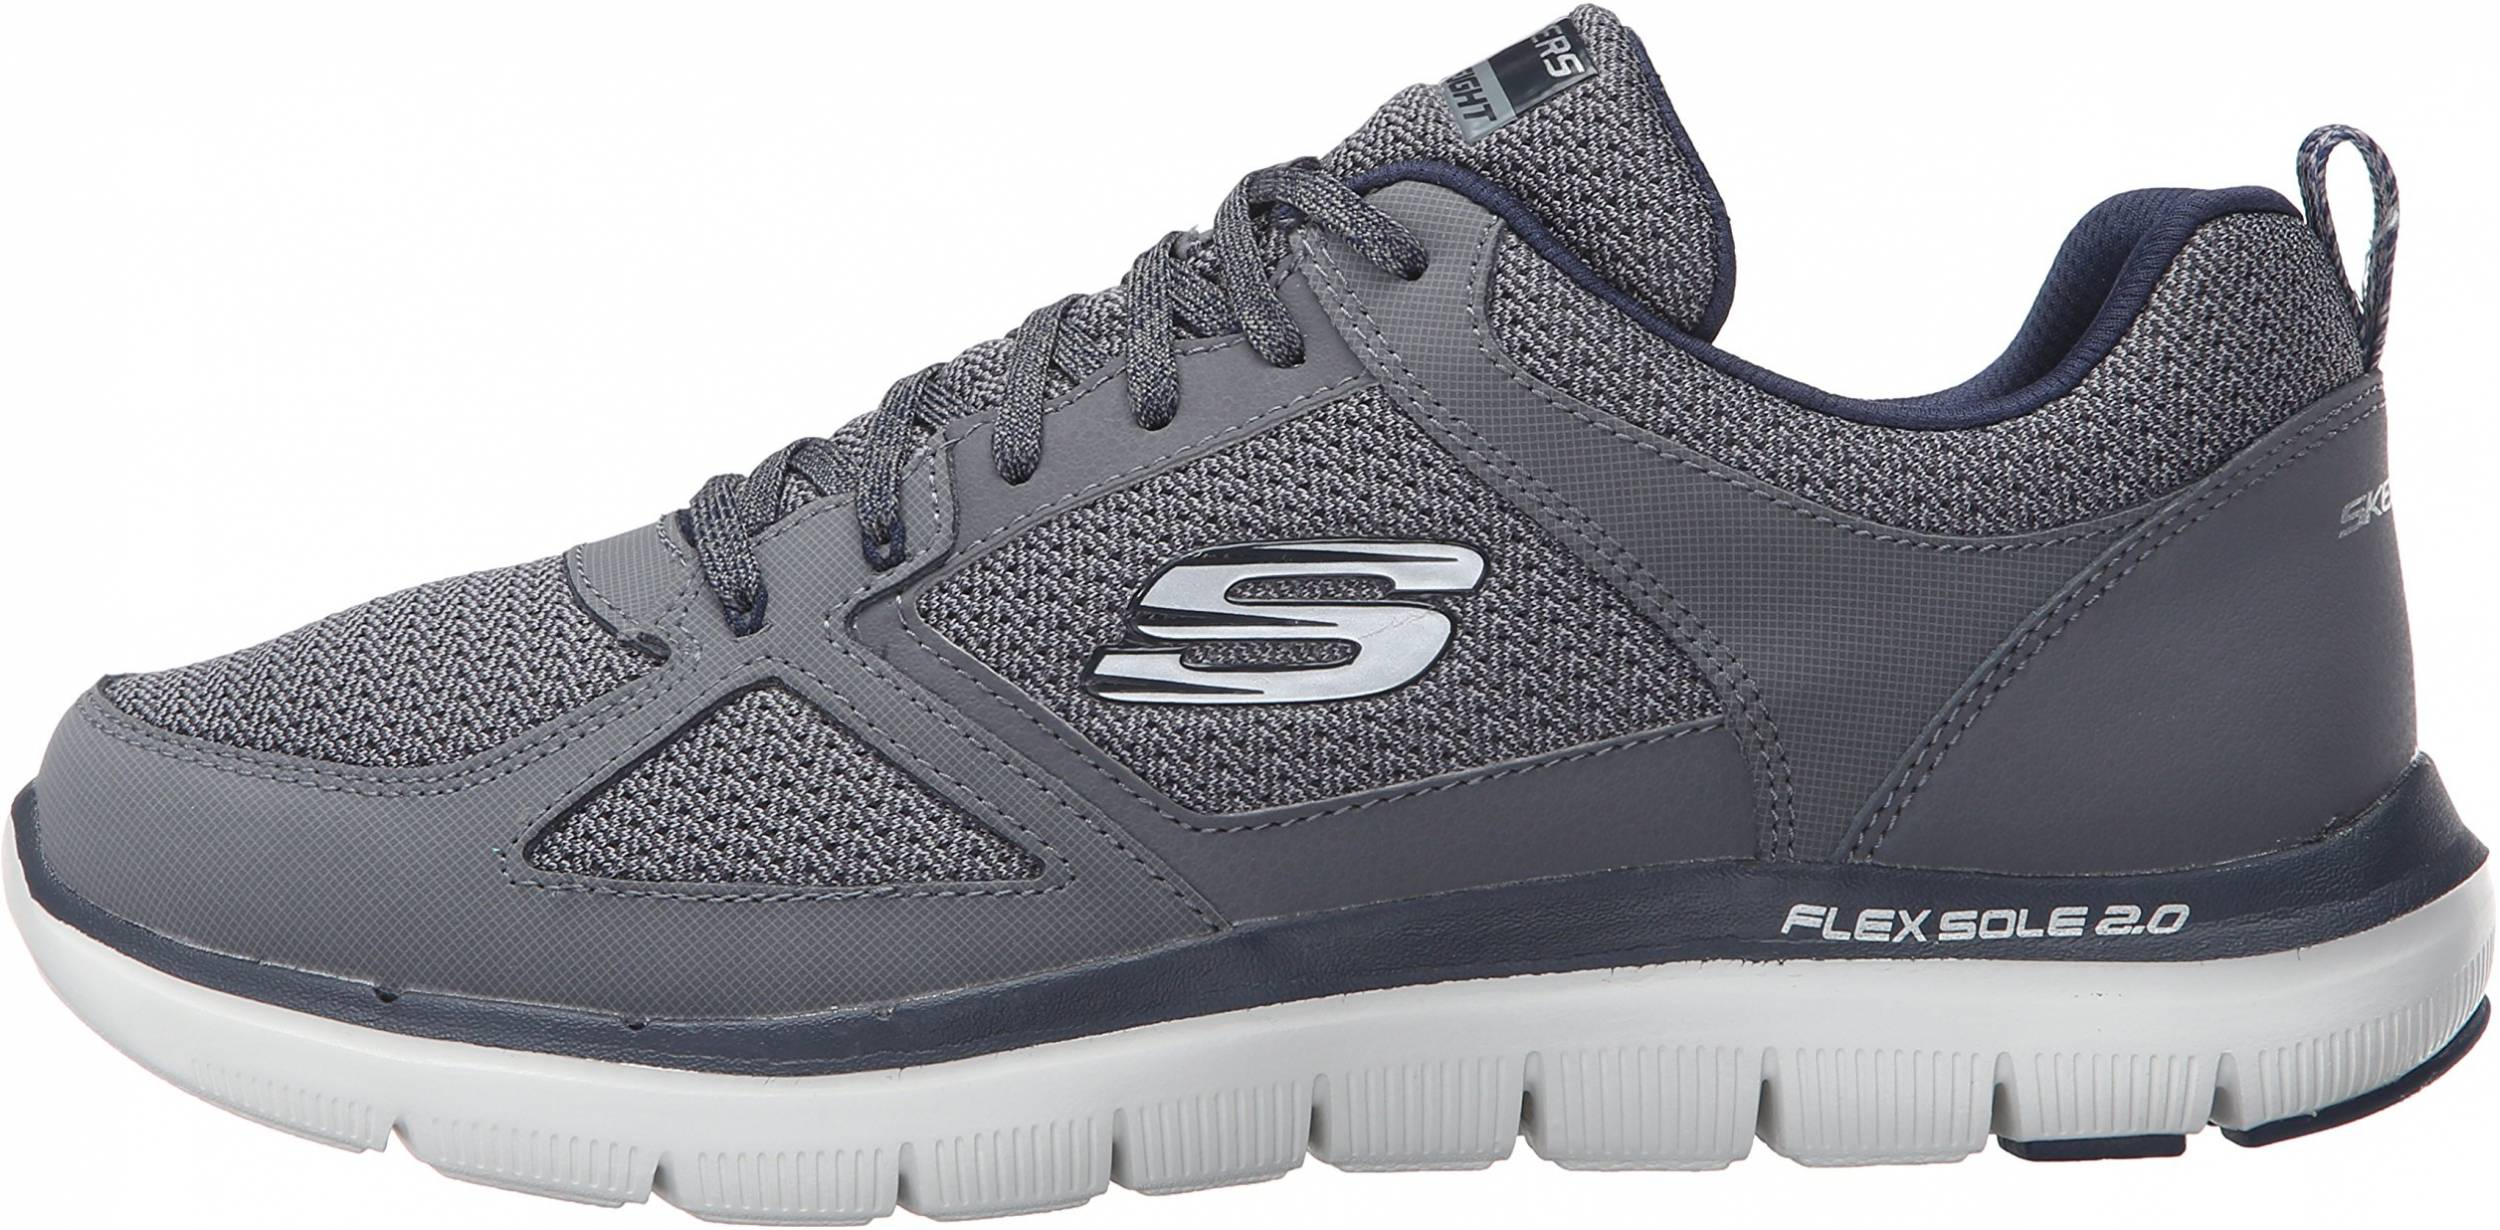 Save 29% on Skechers Workout Shoes (30